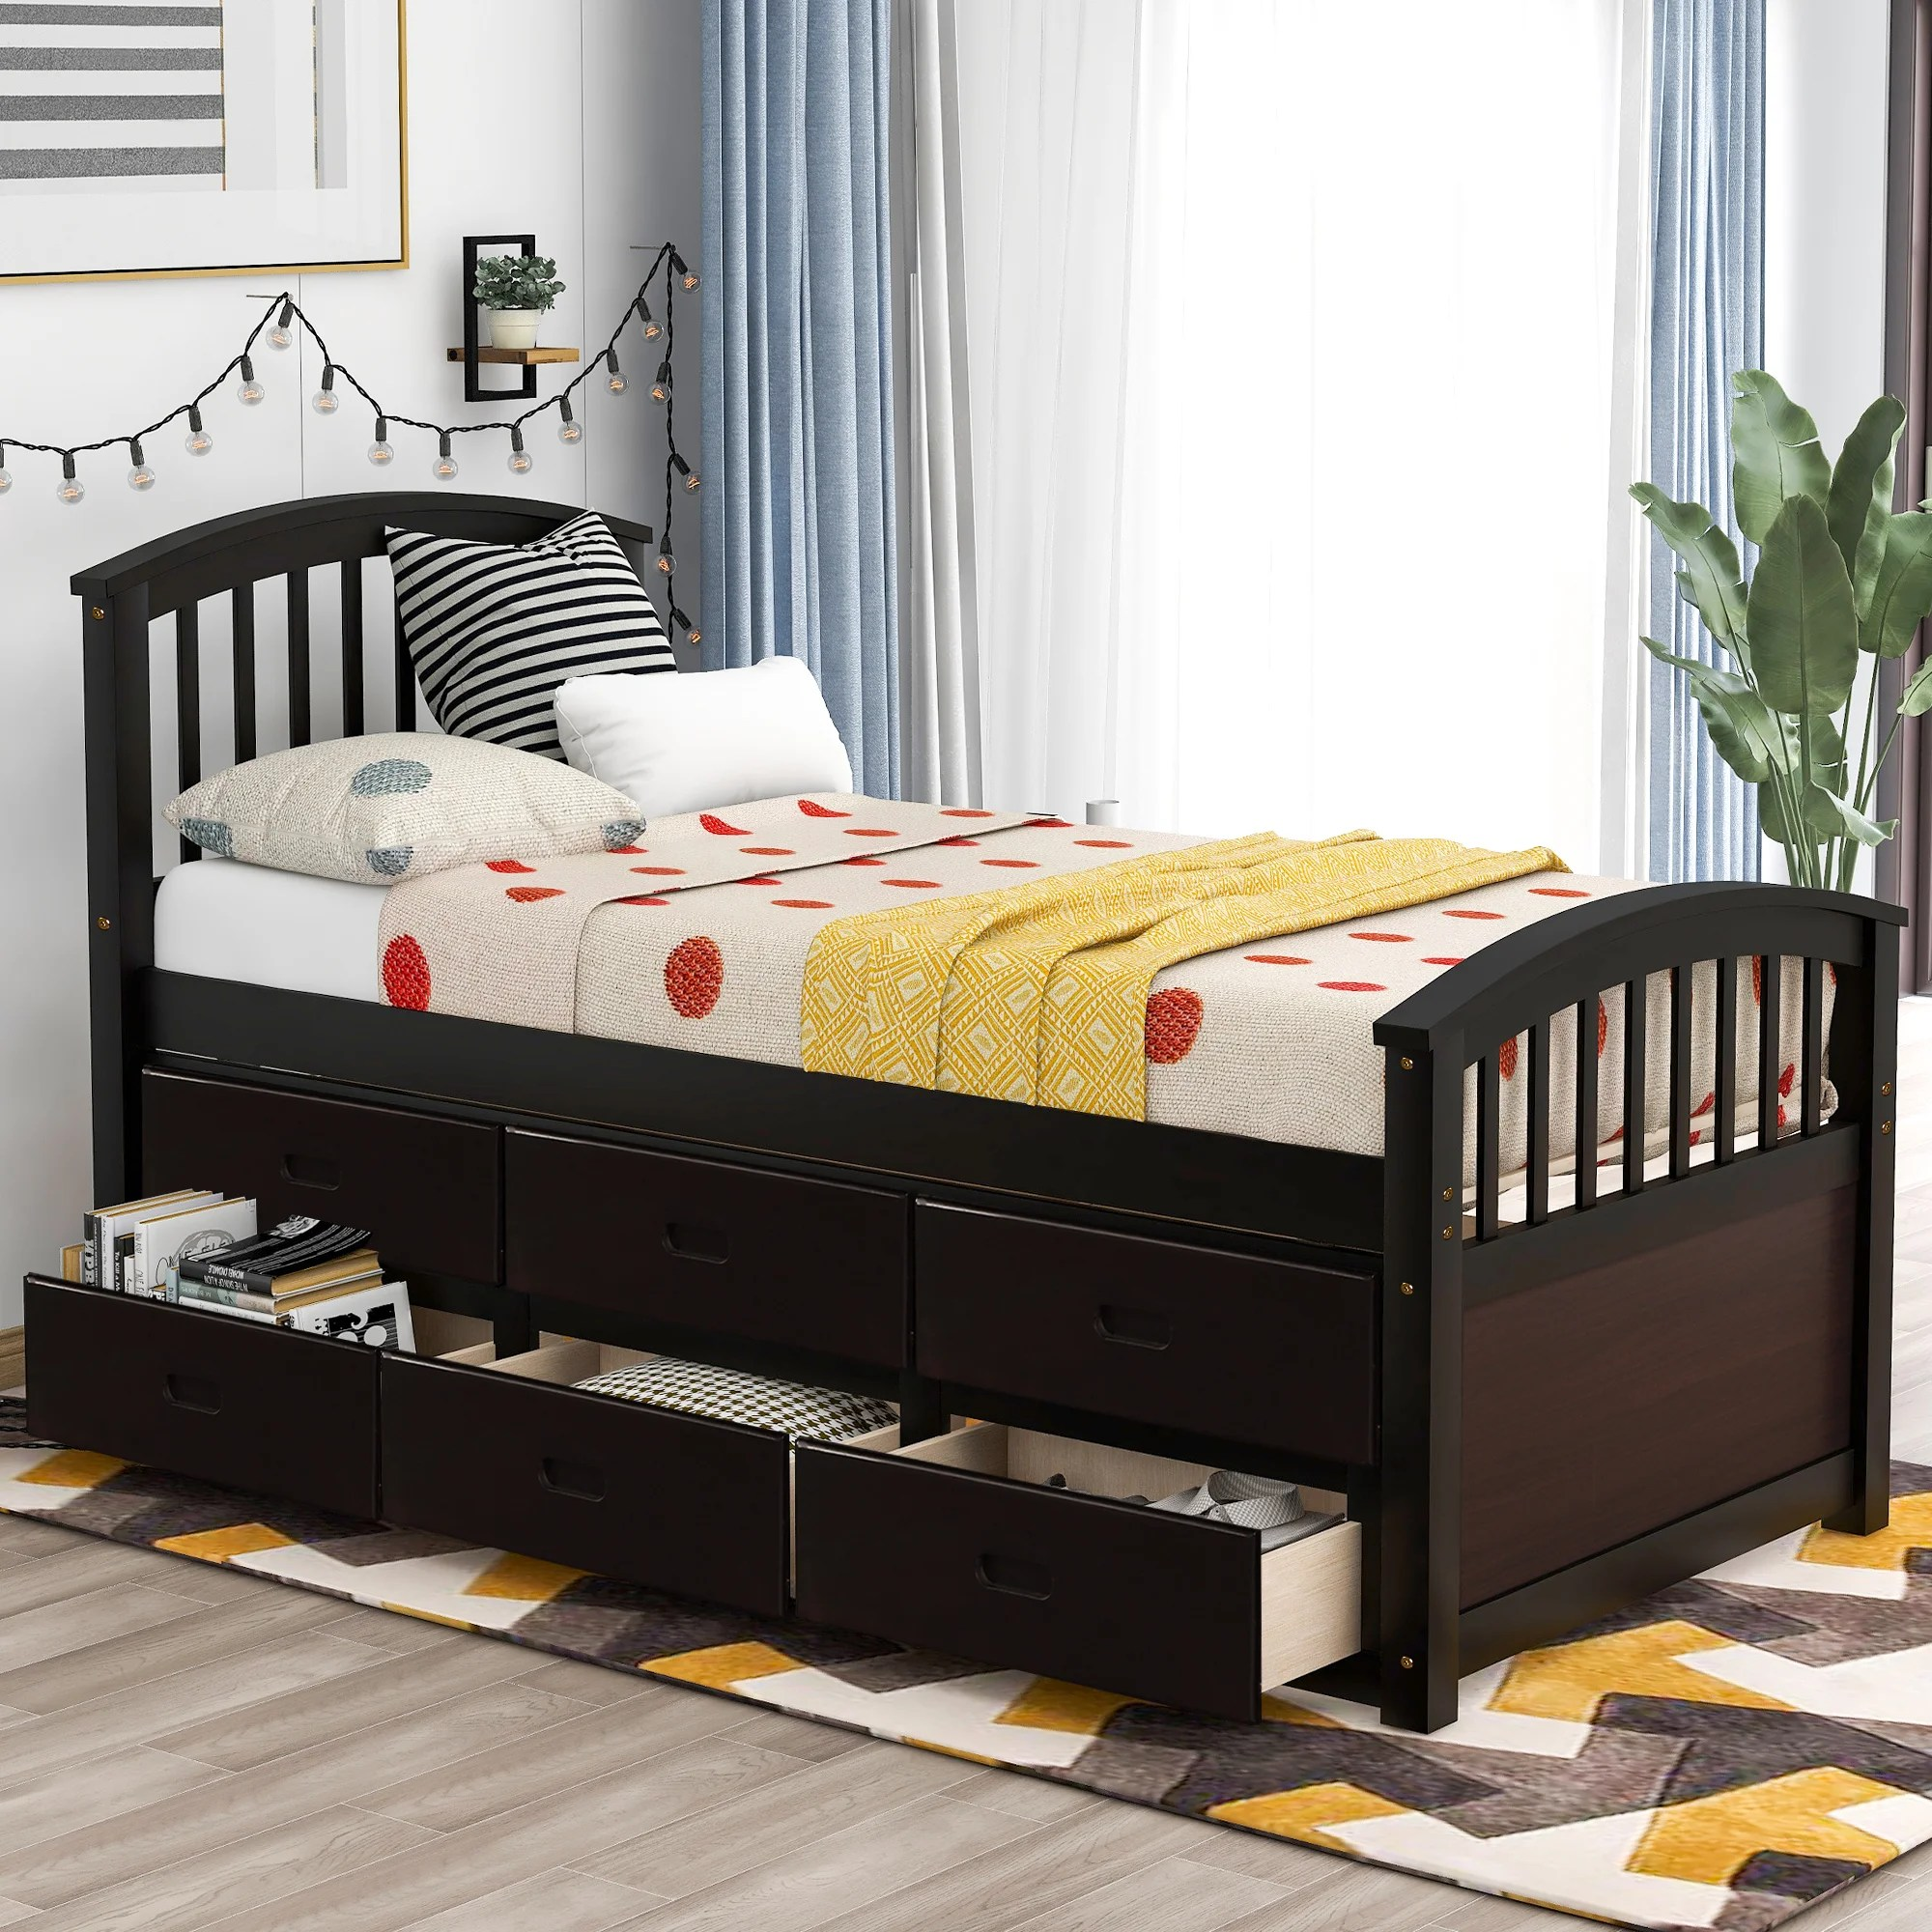 Harriet Bee Torbay Twin Plateform Bed With 6 Drawers Wayfair